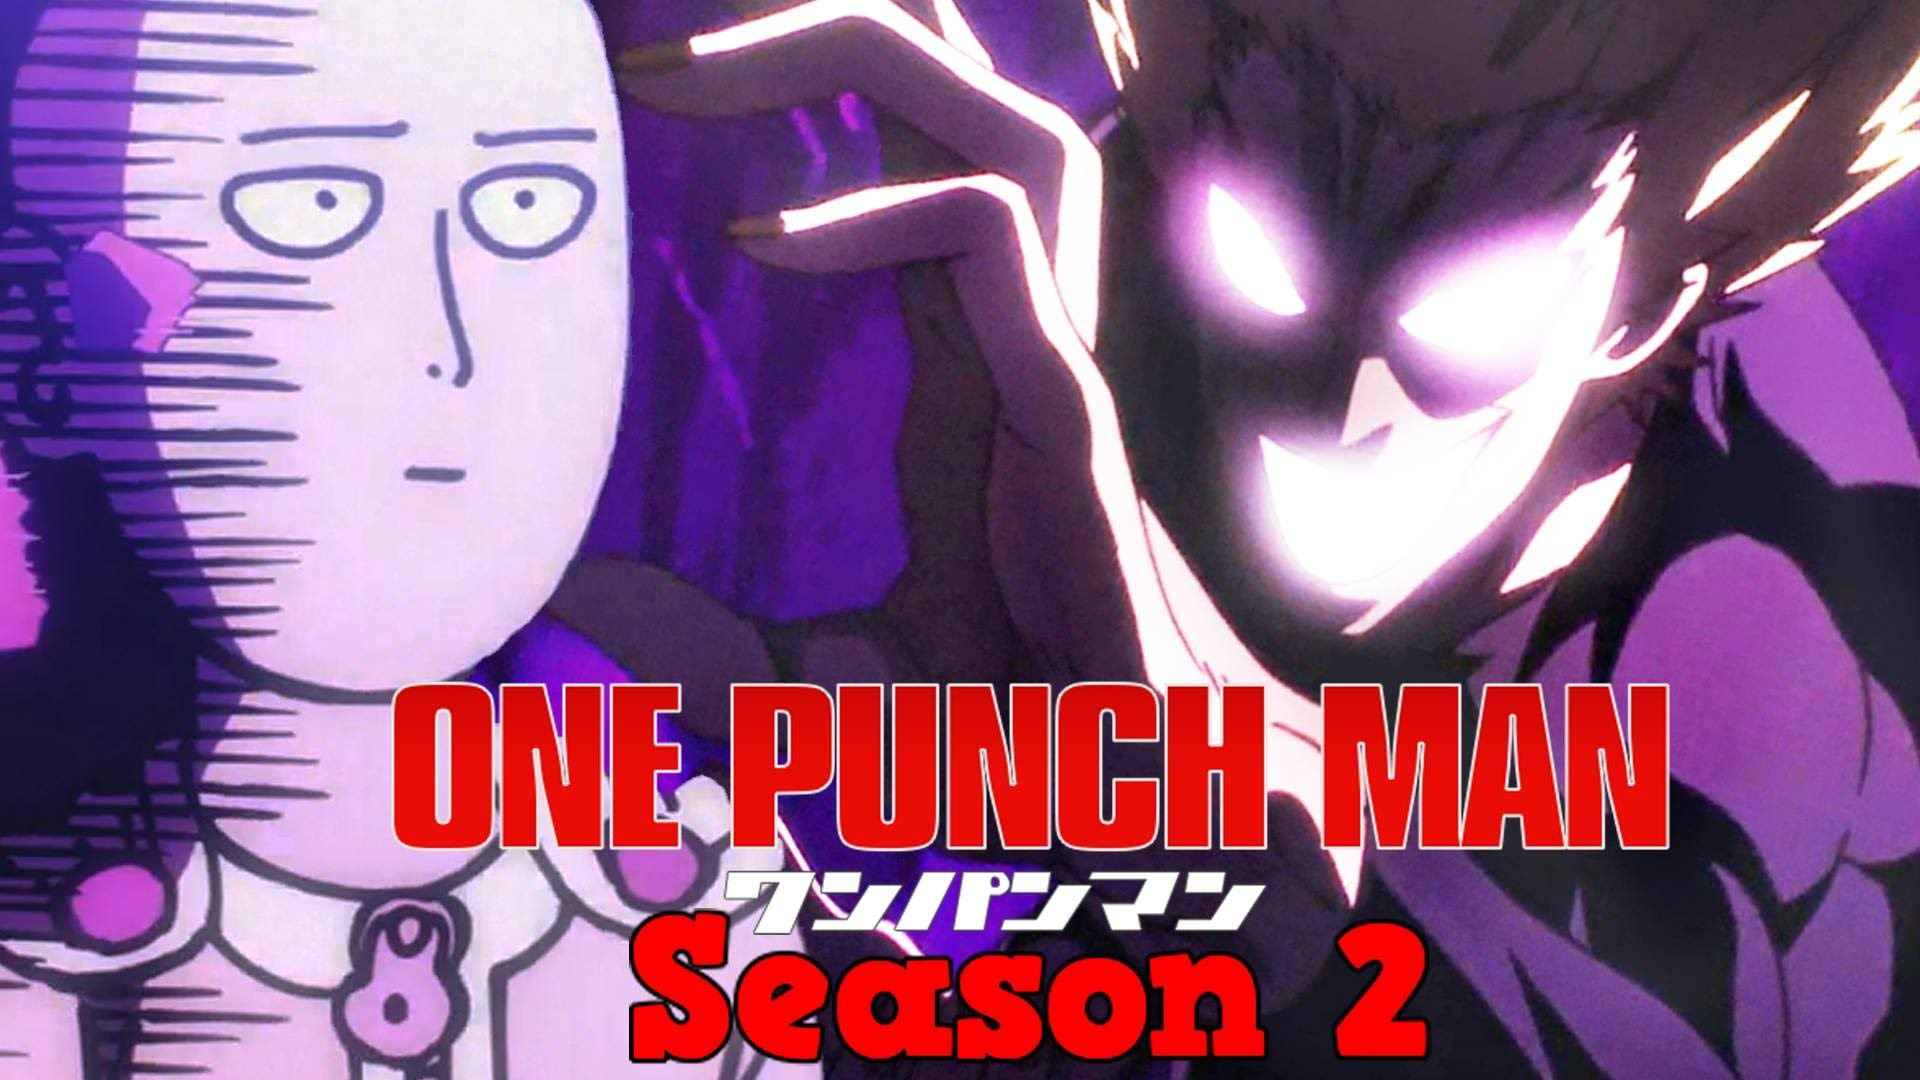 Download One punch Man Season 2 Episode 1-13 Subtitles Download One